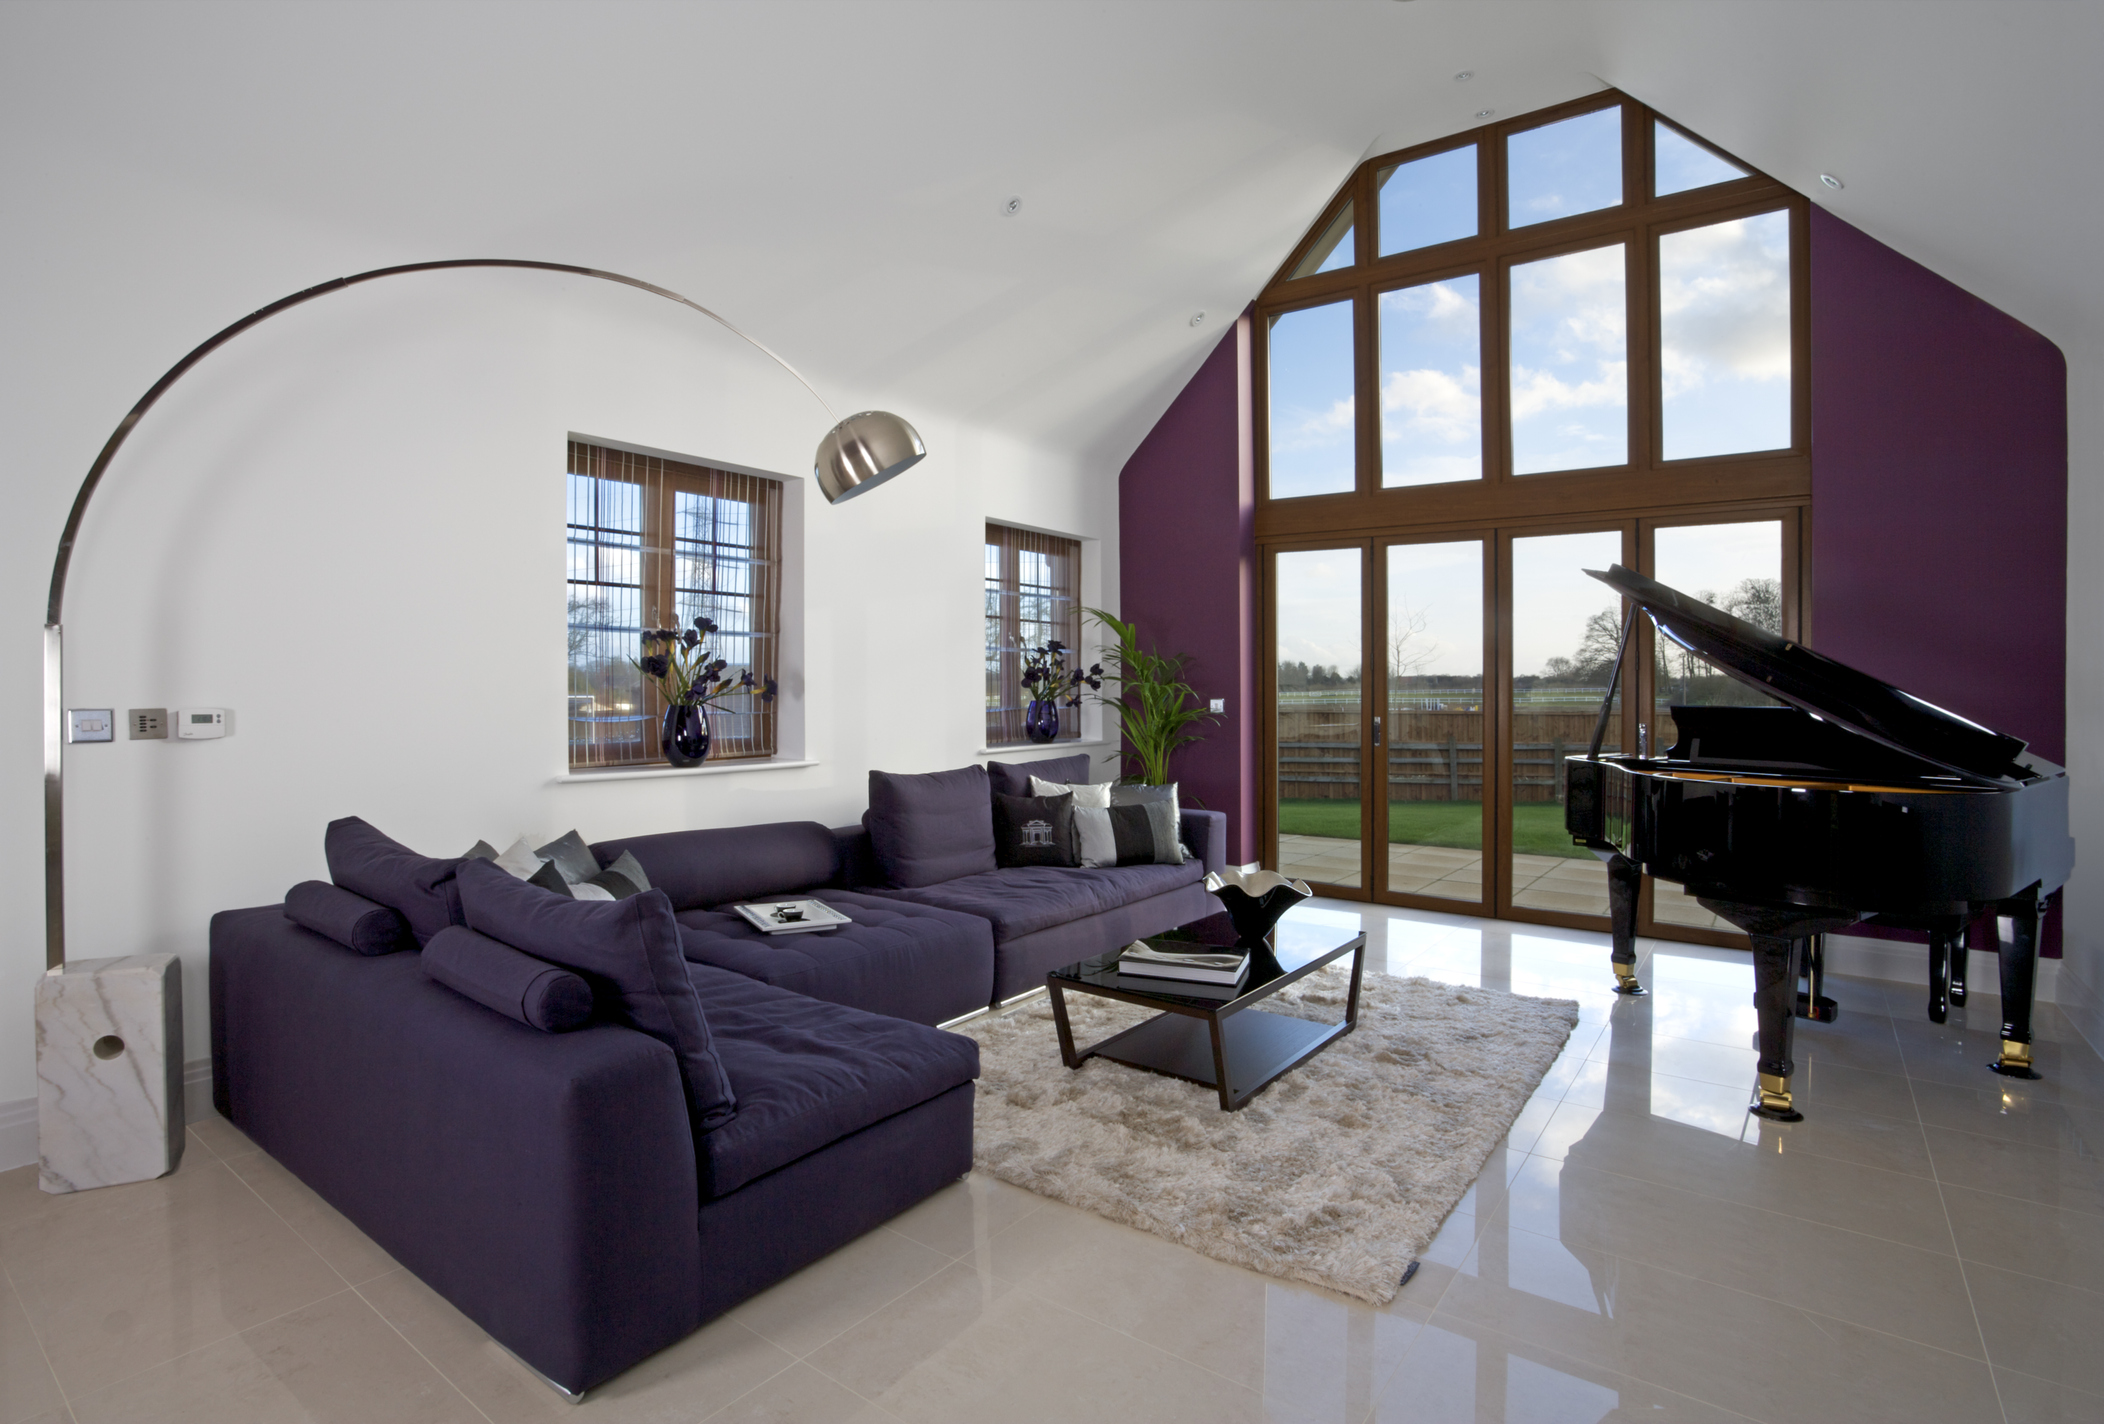 a spectacular lounge in a luxury new home and part of an exclusive development. This room has been decorated and furnished by a leading Interior Designer, with features including a baby grand piano and an extraordinary lamp...